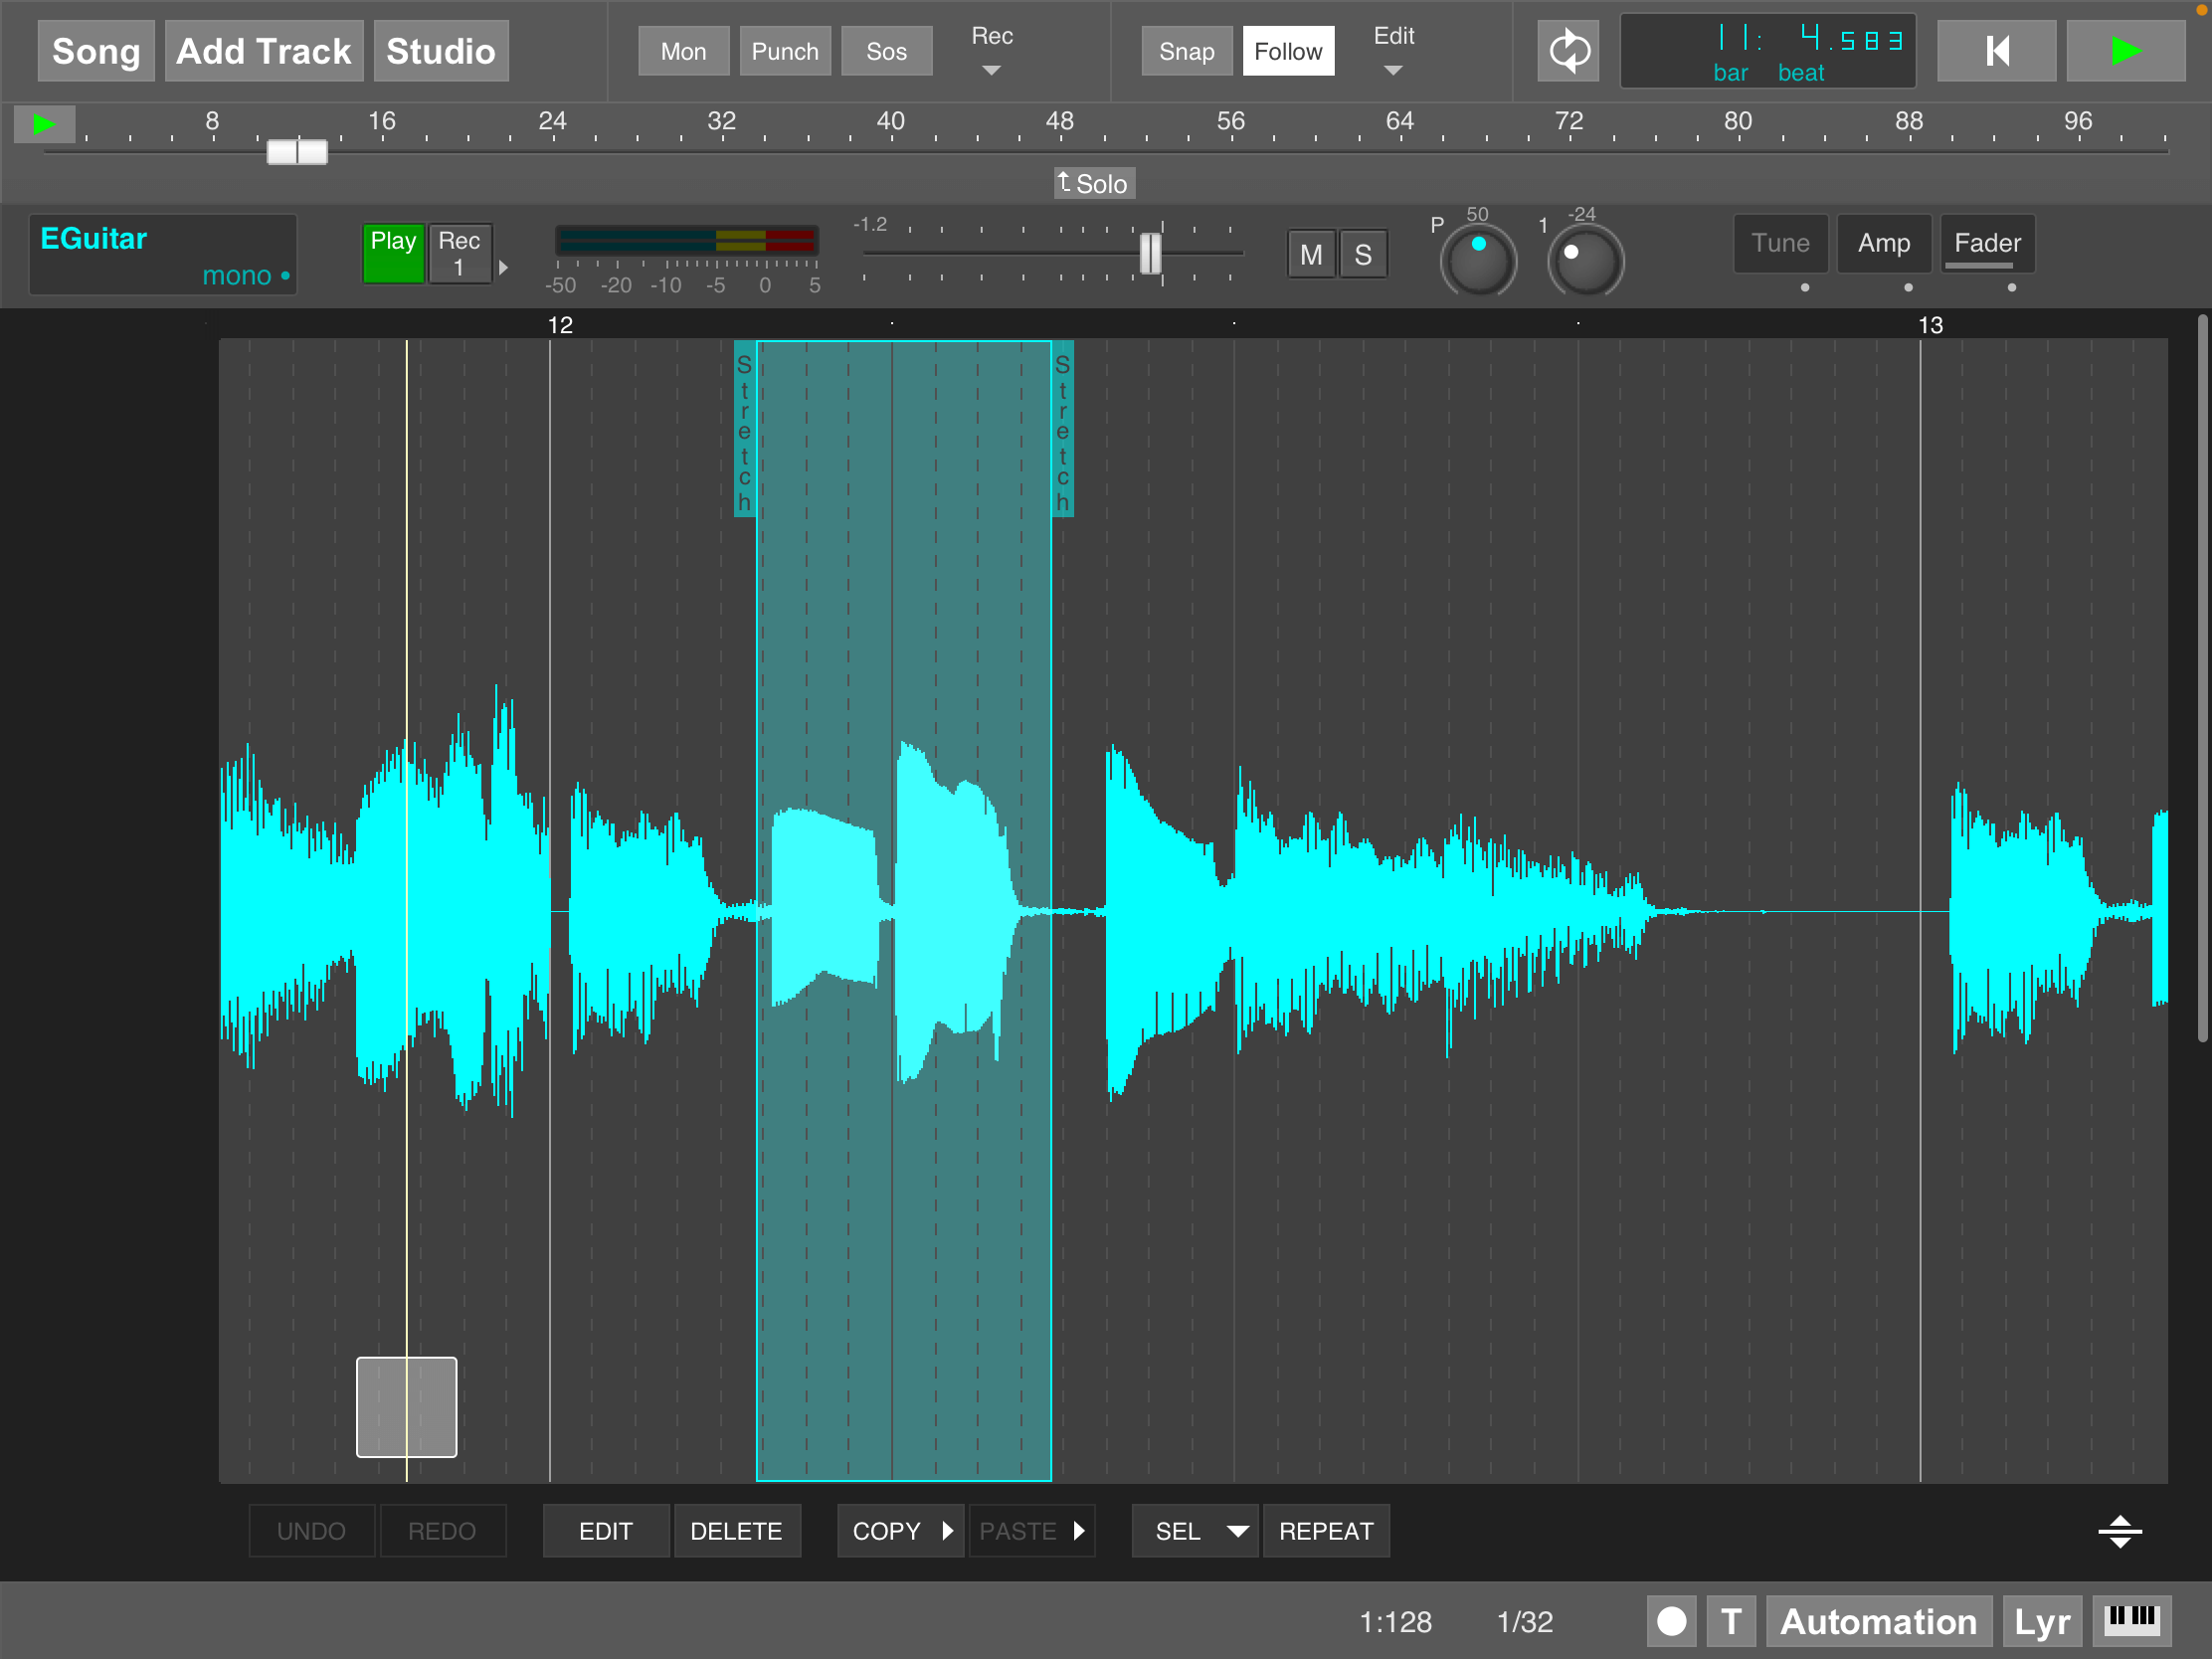 MultitrackStudio for iPad - Time stretching in track editor